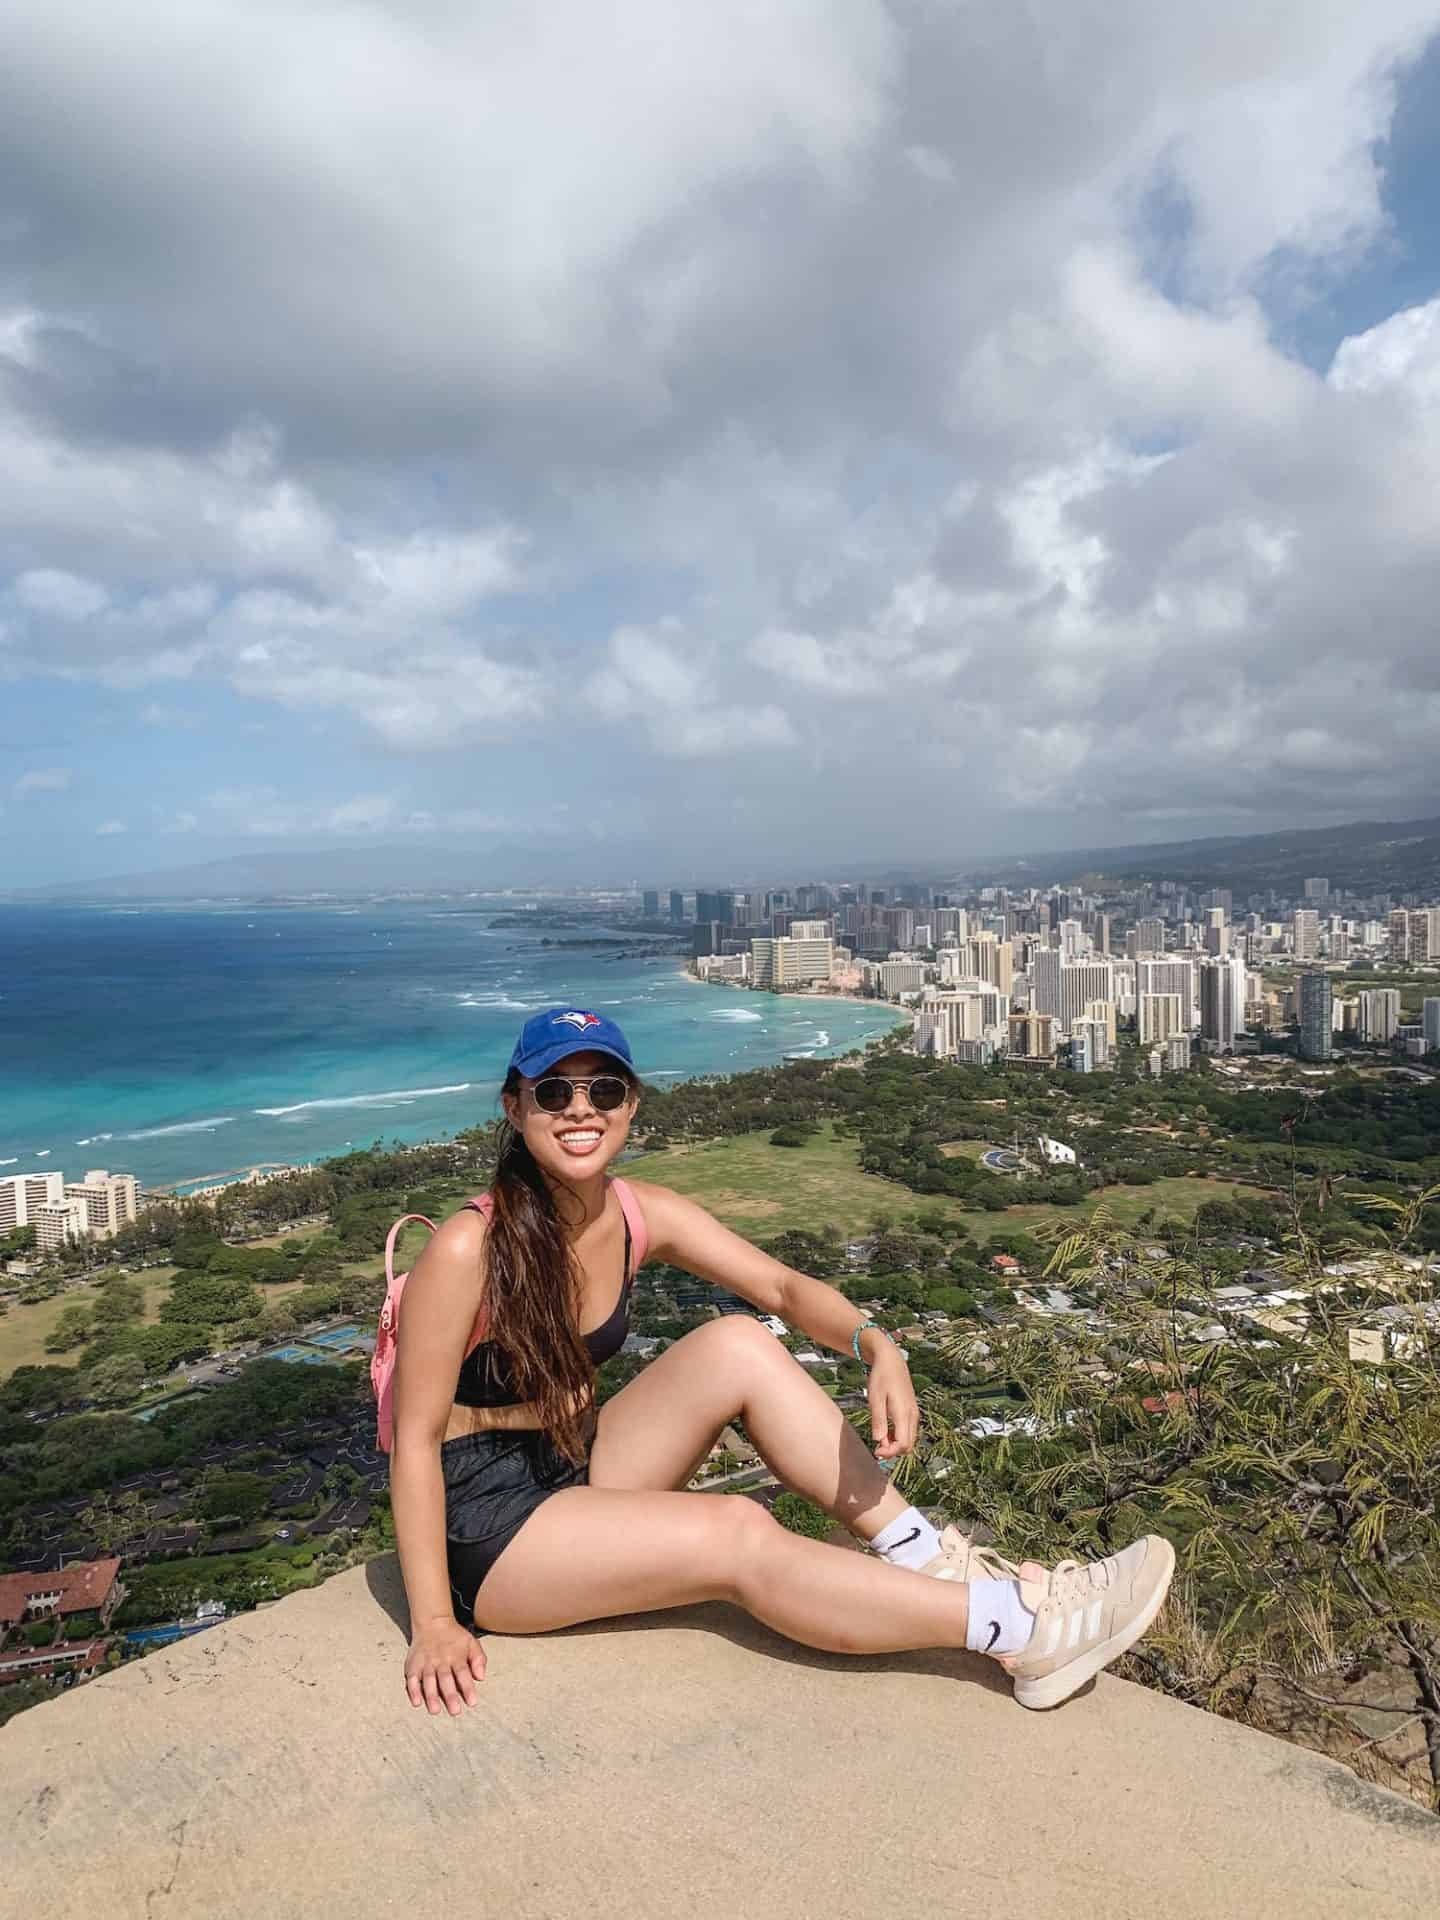 The Diamond Head Crater hike is one of the best hikes to add to your Oahu itinerary